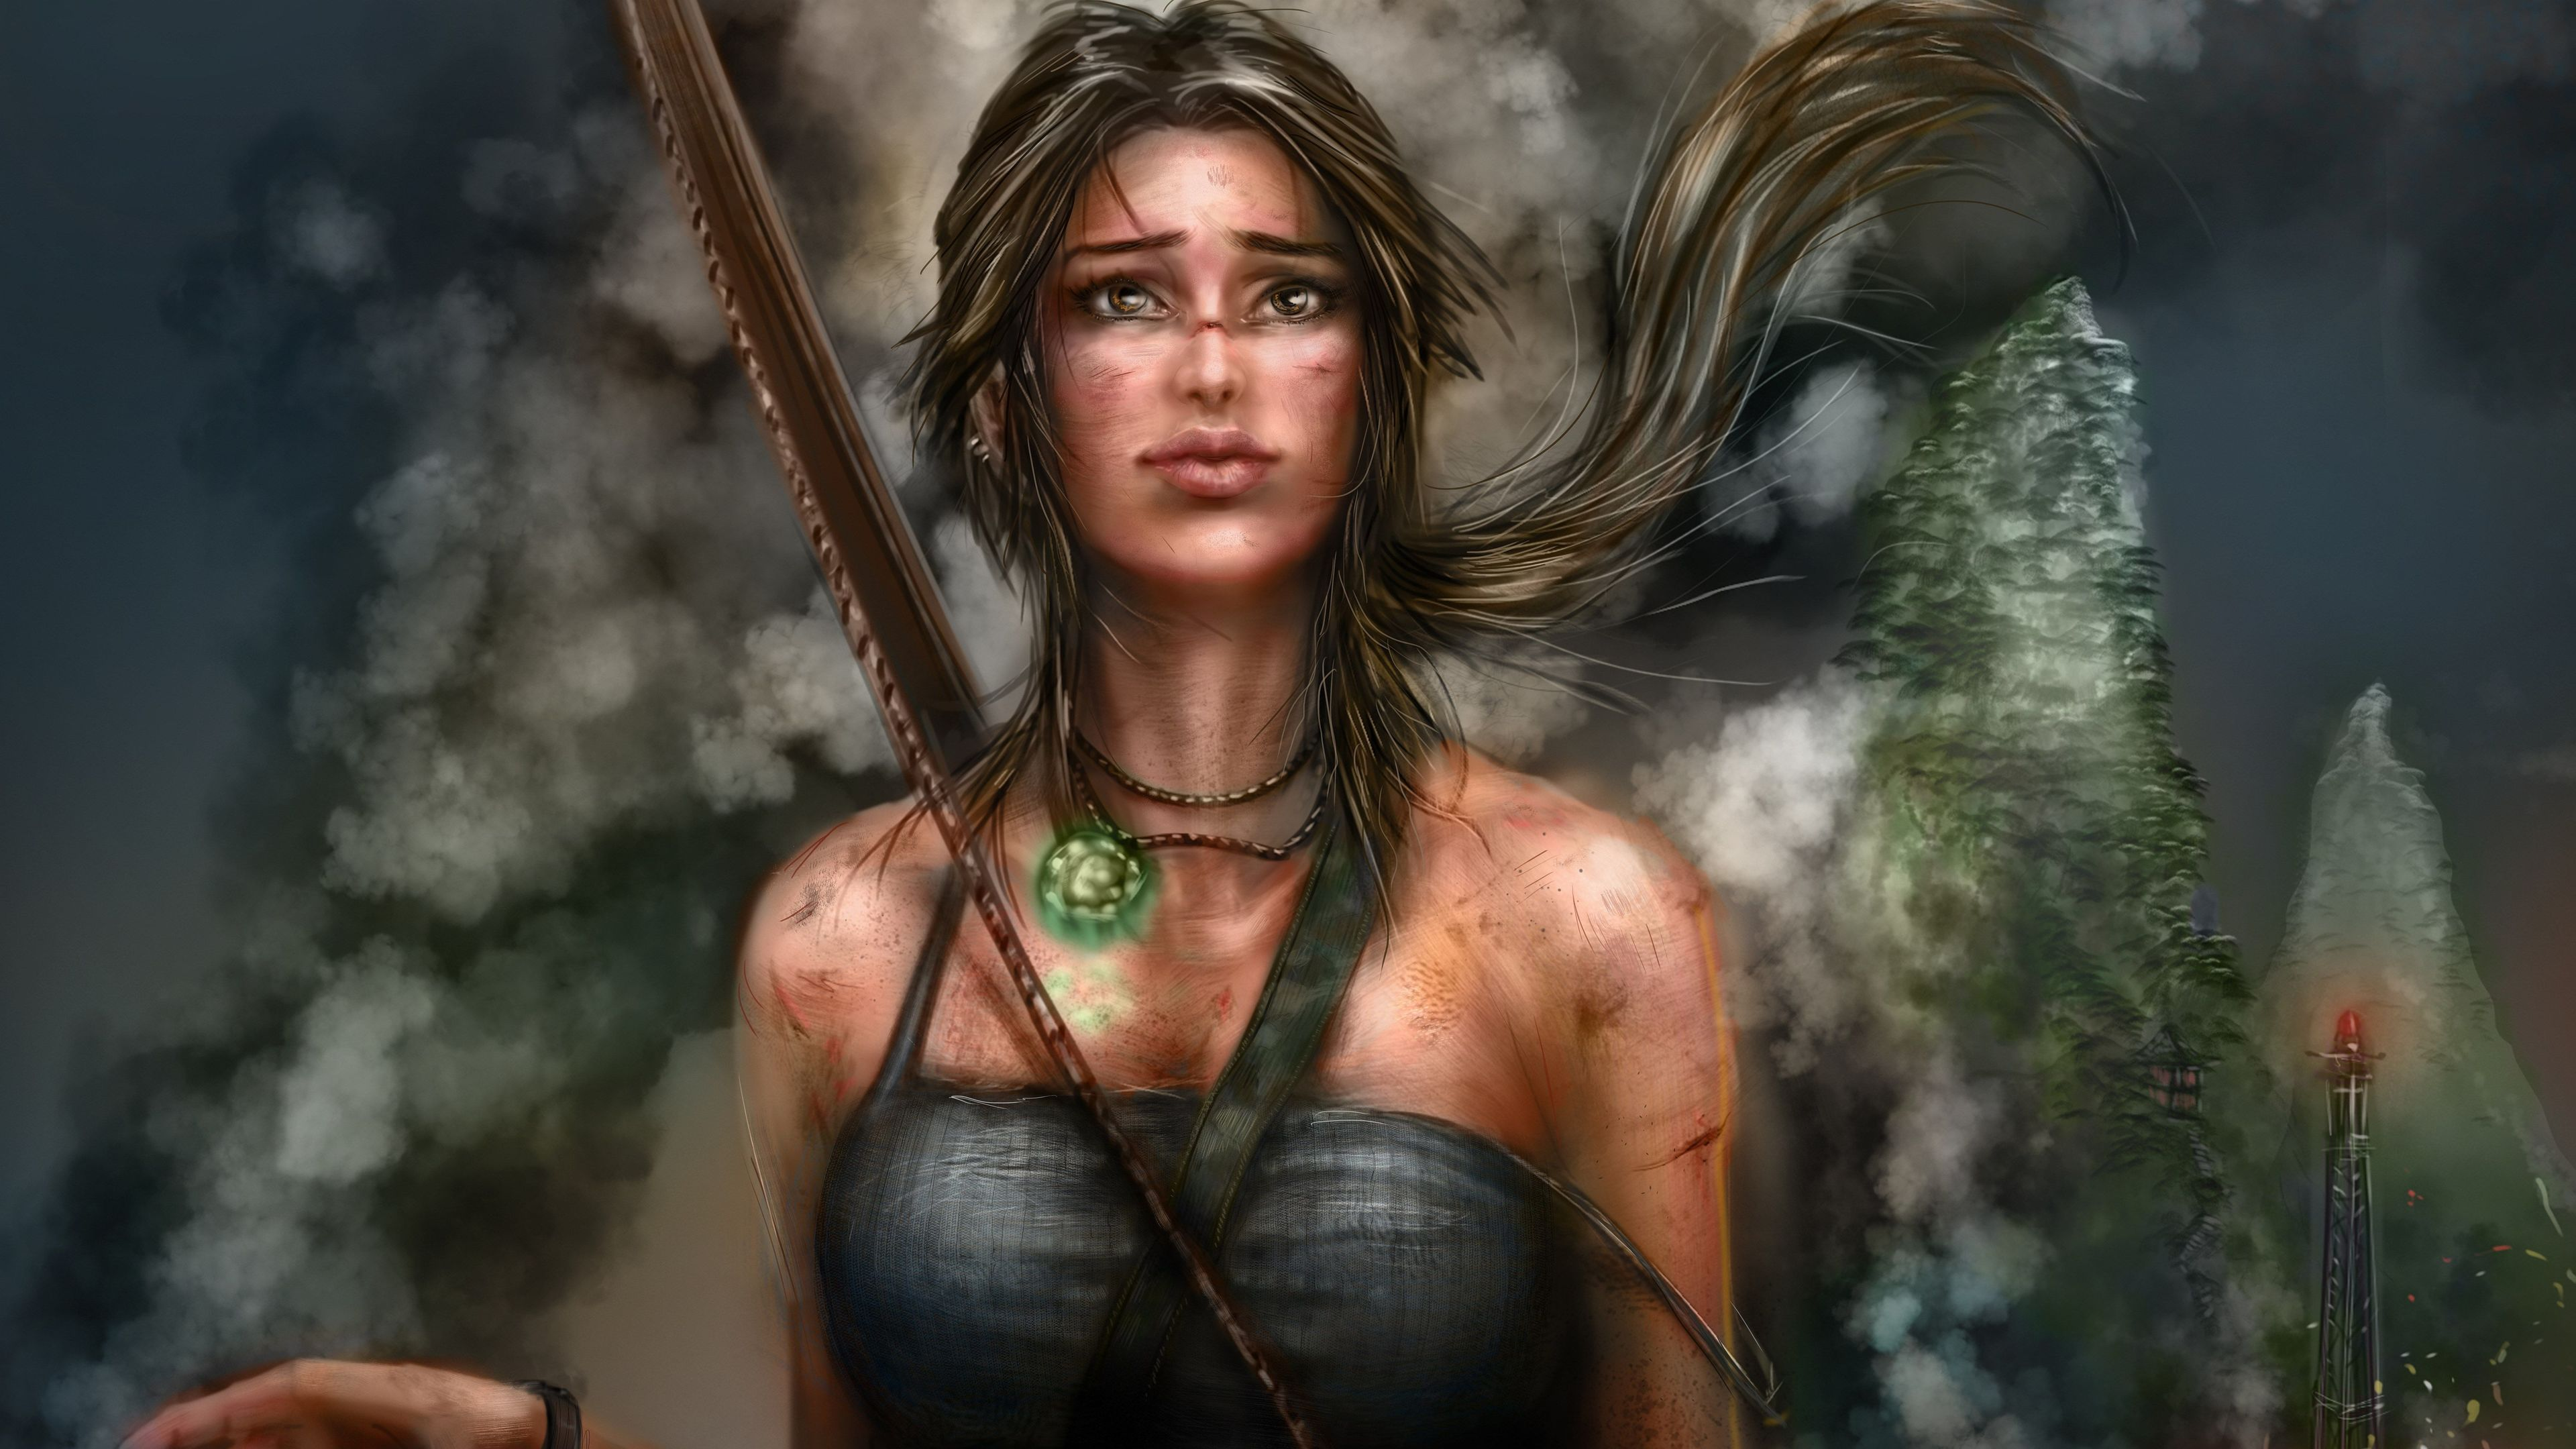 lara croft artworks 4k 1541295338 - Lara Croft Artworks 4k - tomb raider wallpapers, lara croft wallpapers, hd-wallpapers, games wallpapers, digital art wallpapers, artwork wallpapers, artist wallpapers, 5k wallpapers, 4k-wallpapers